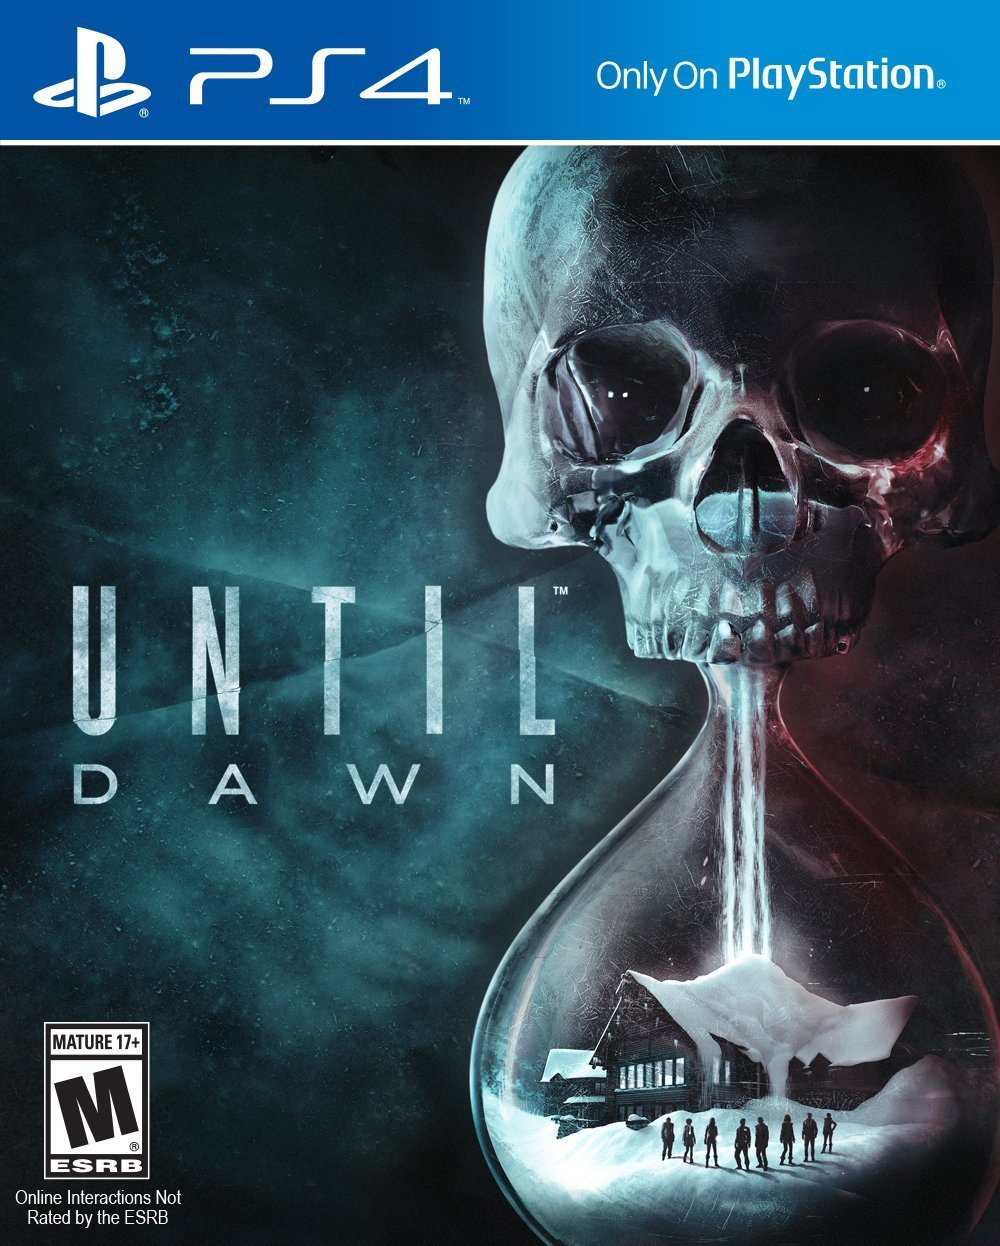 until dawn video game cover for playstation 4